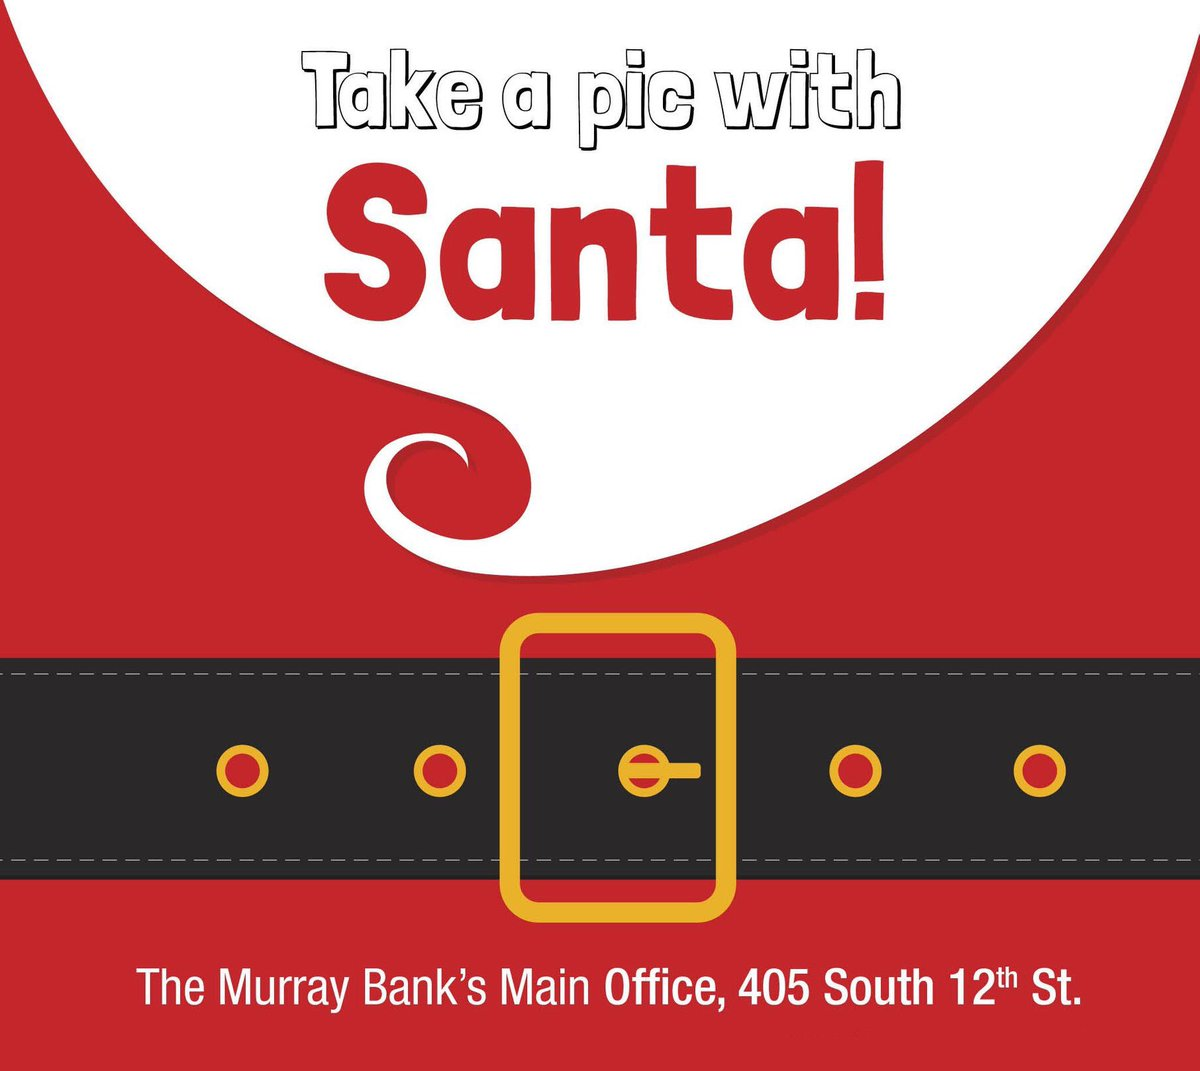 - The Murray Bank Main Office  - 3:30 pm - 5 pm  - TODAY  - All Offices All Day!  - FREE PICTURES <br>http://pic.twitter.com/pYk7DOICUy